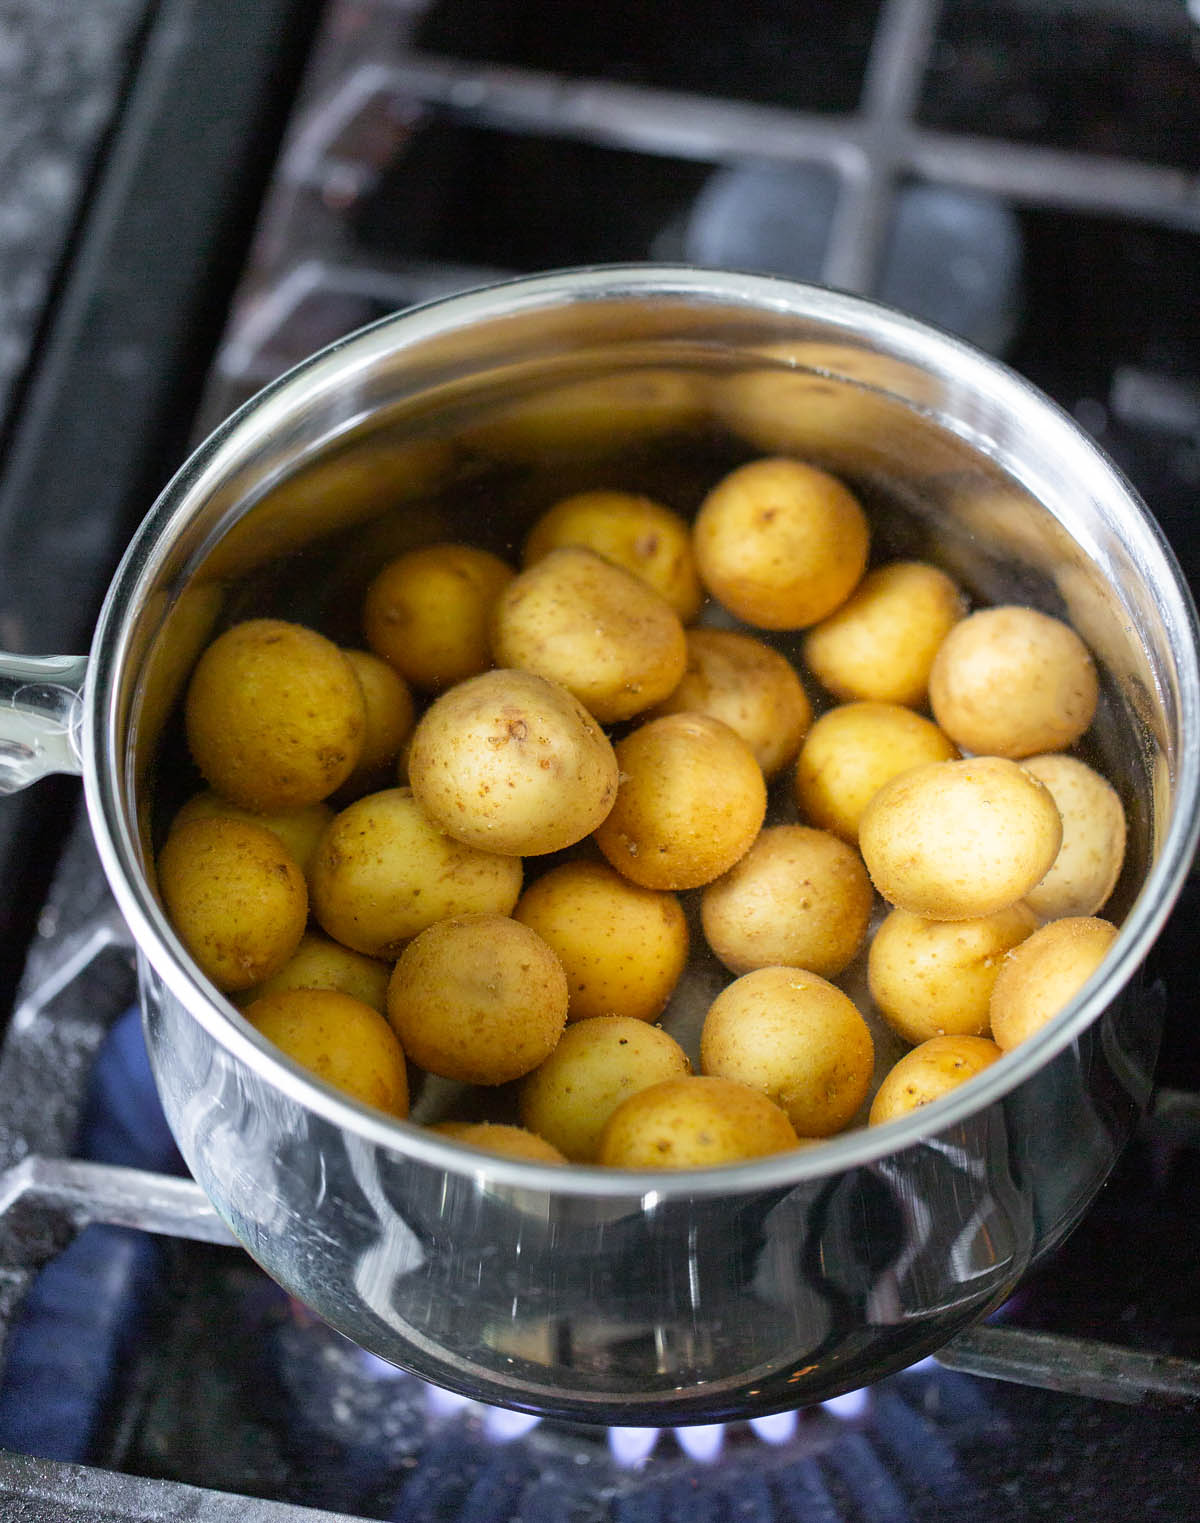 cooking baby potatoes in a pot